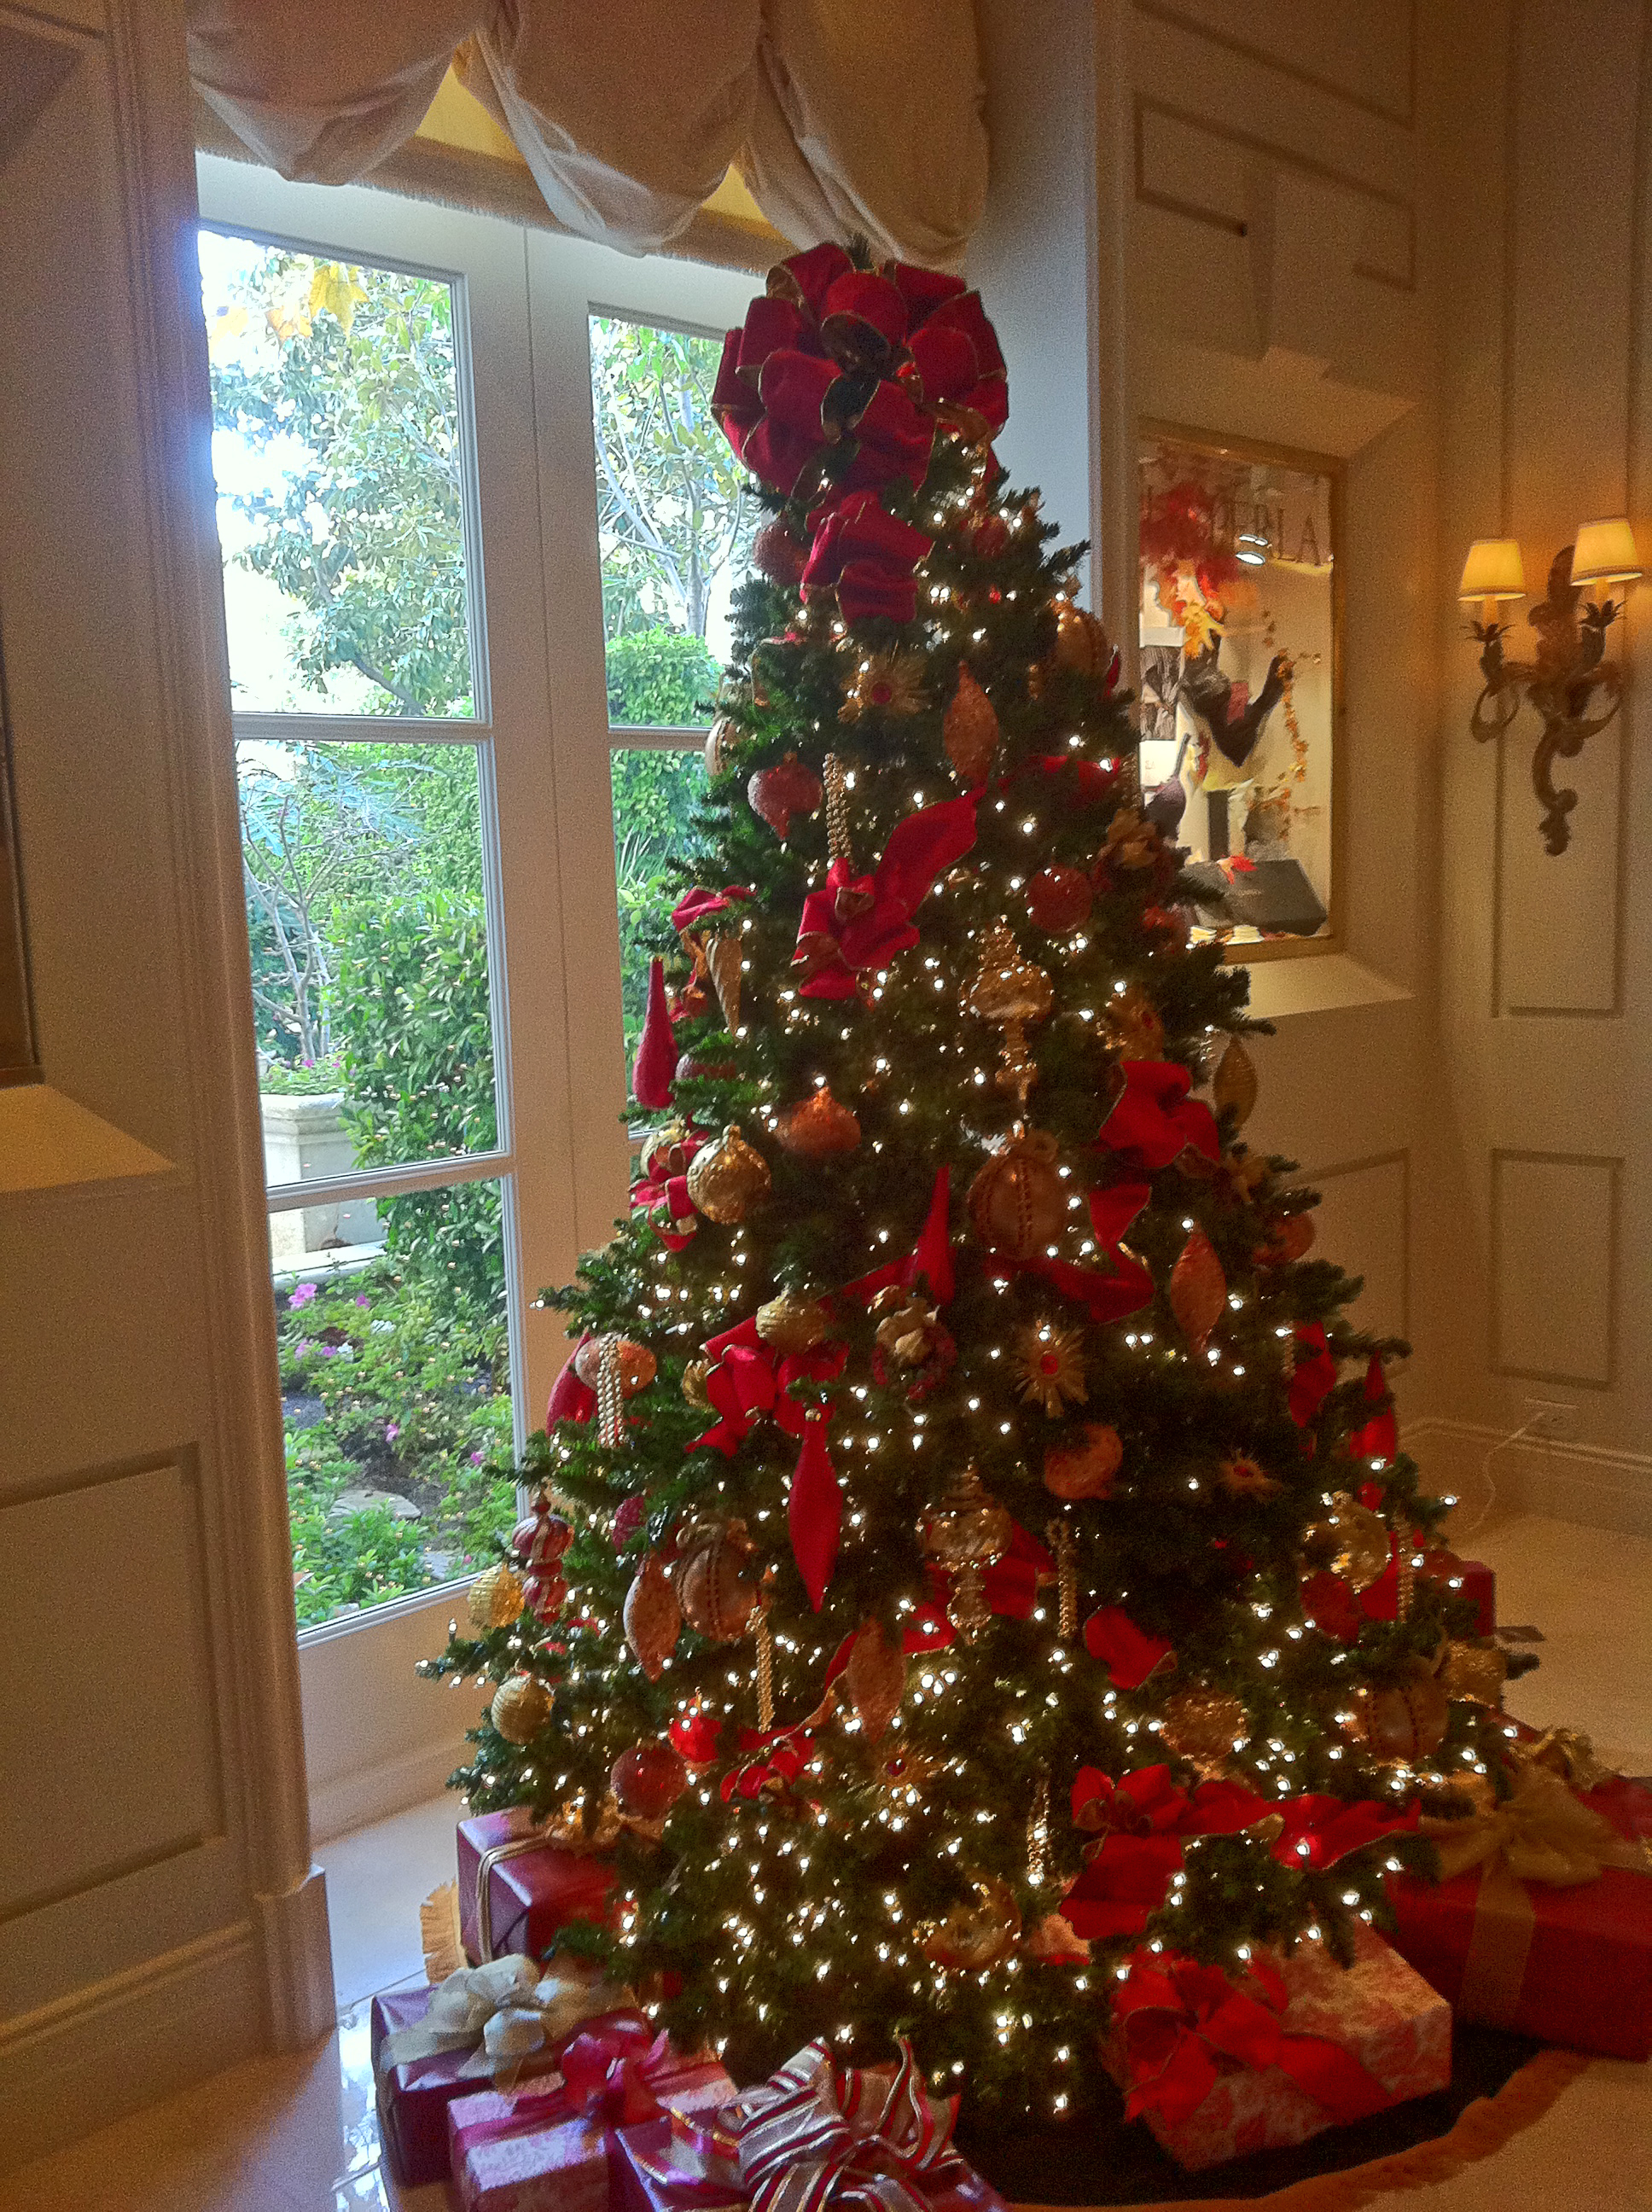 The beverly hills mom red and gold beribboned christmas for Red gold christmas tree decorating ideas